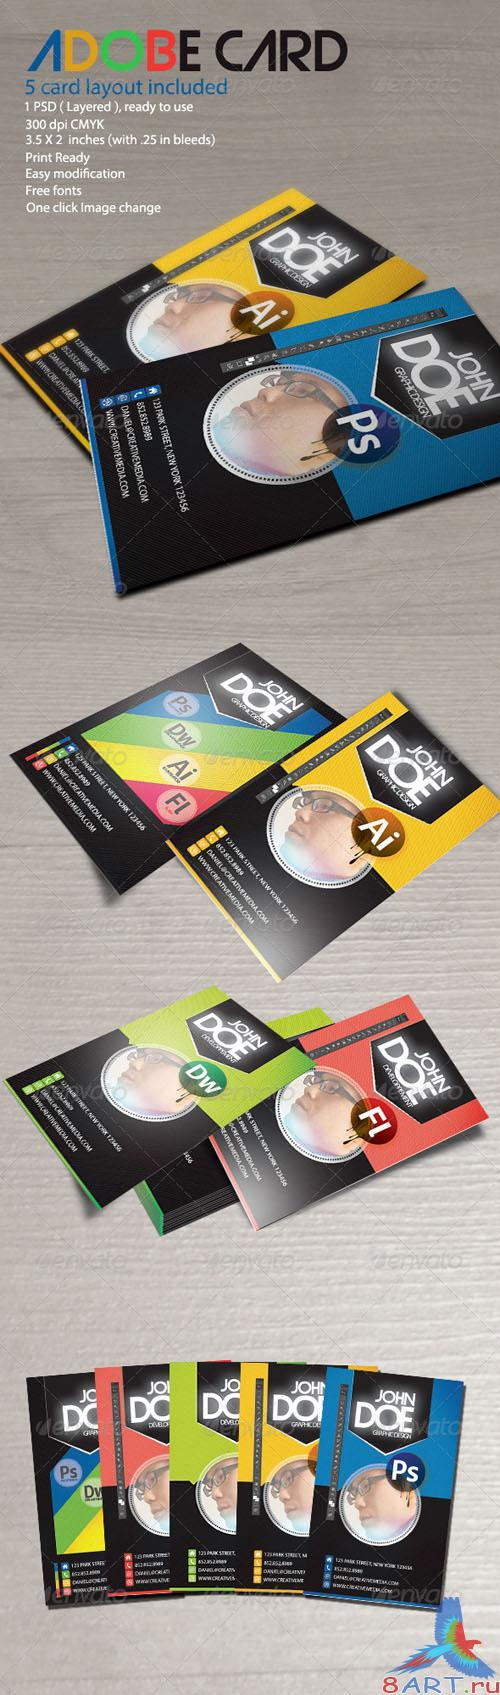 GraphicRiver - Adobe Card 2558743